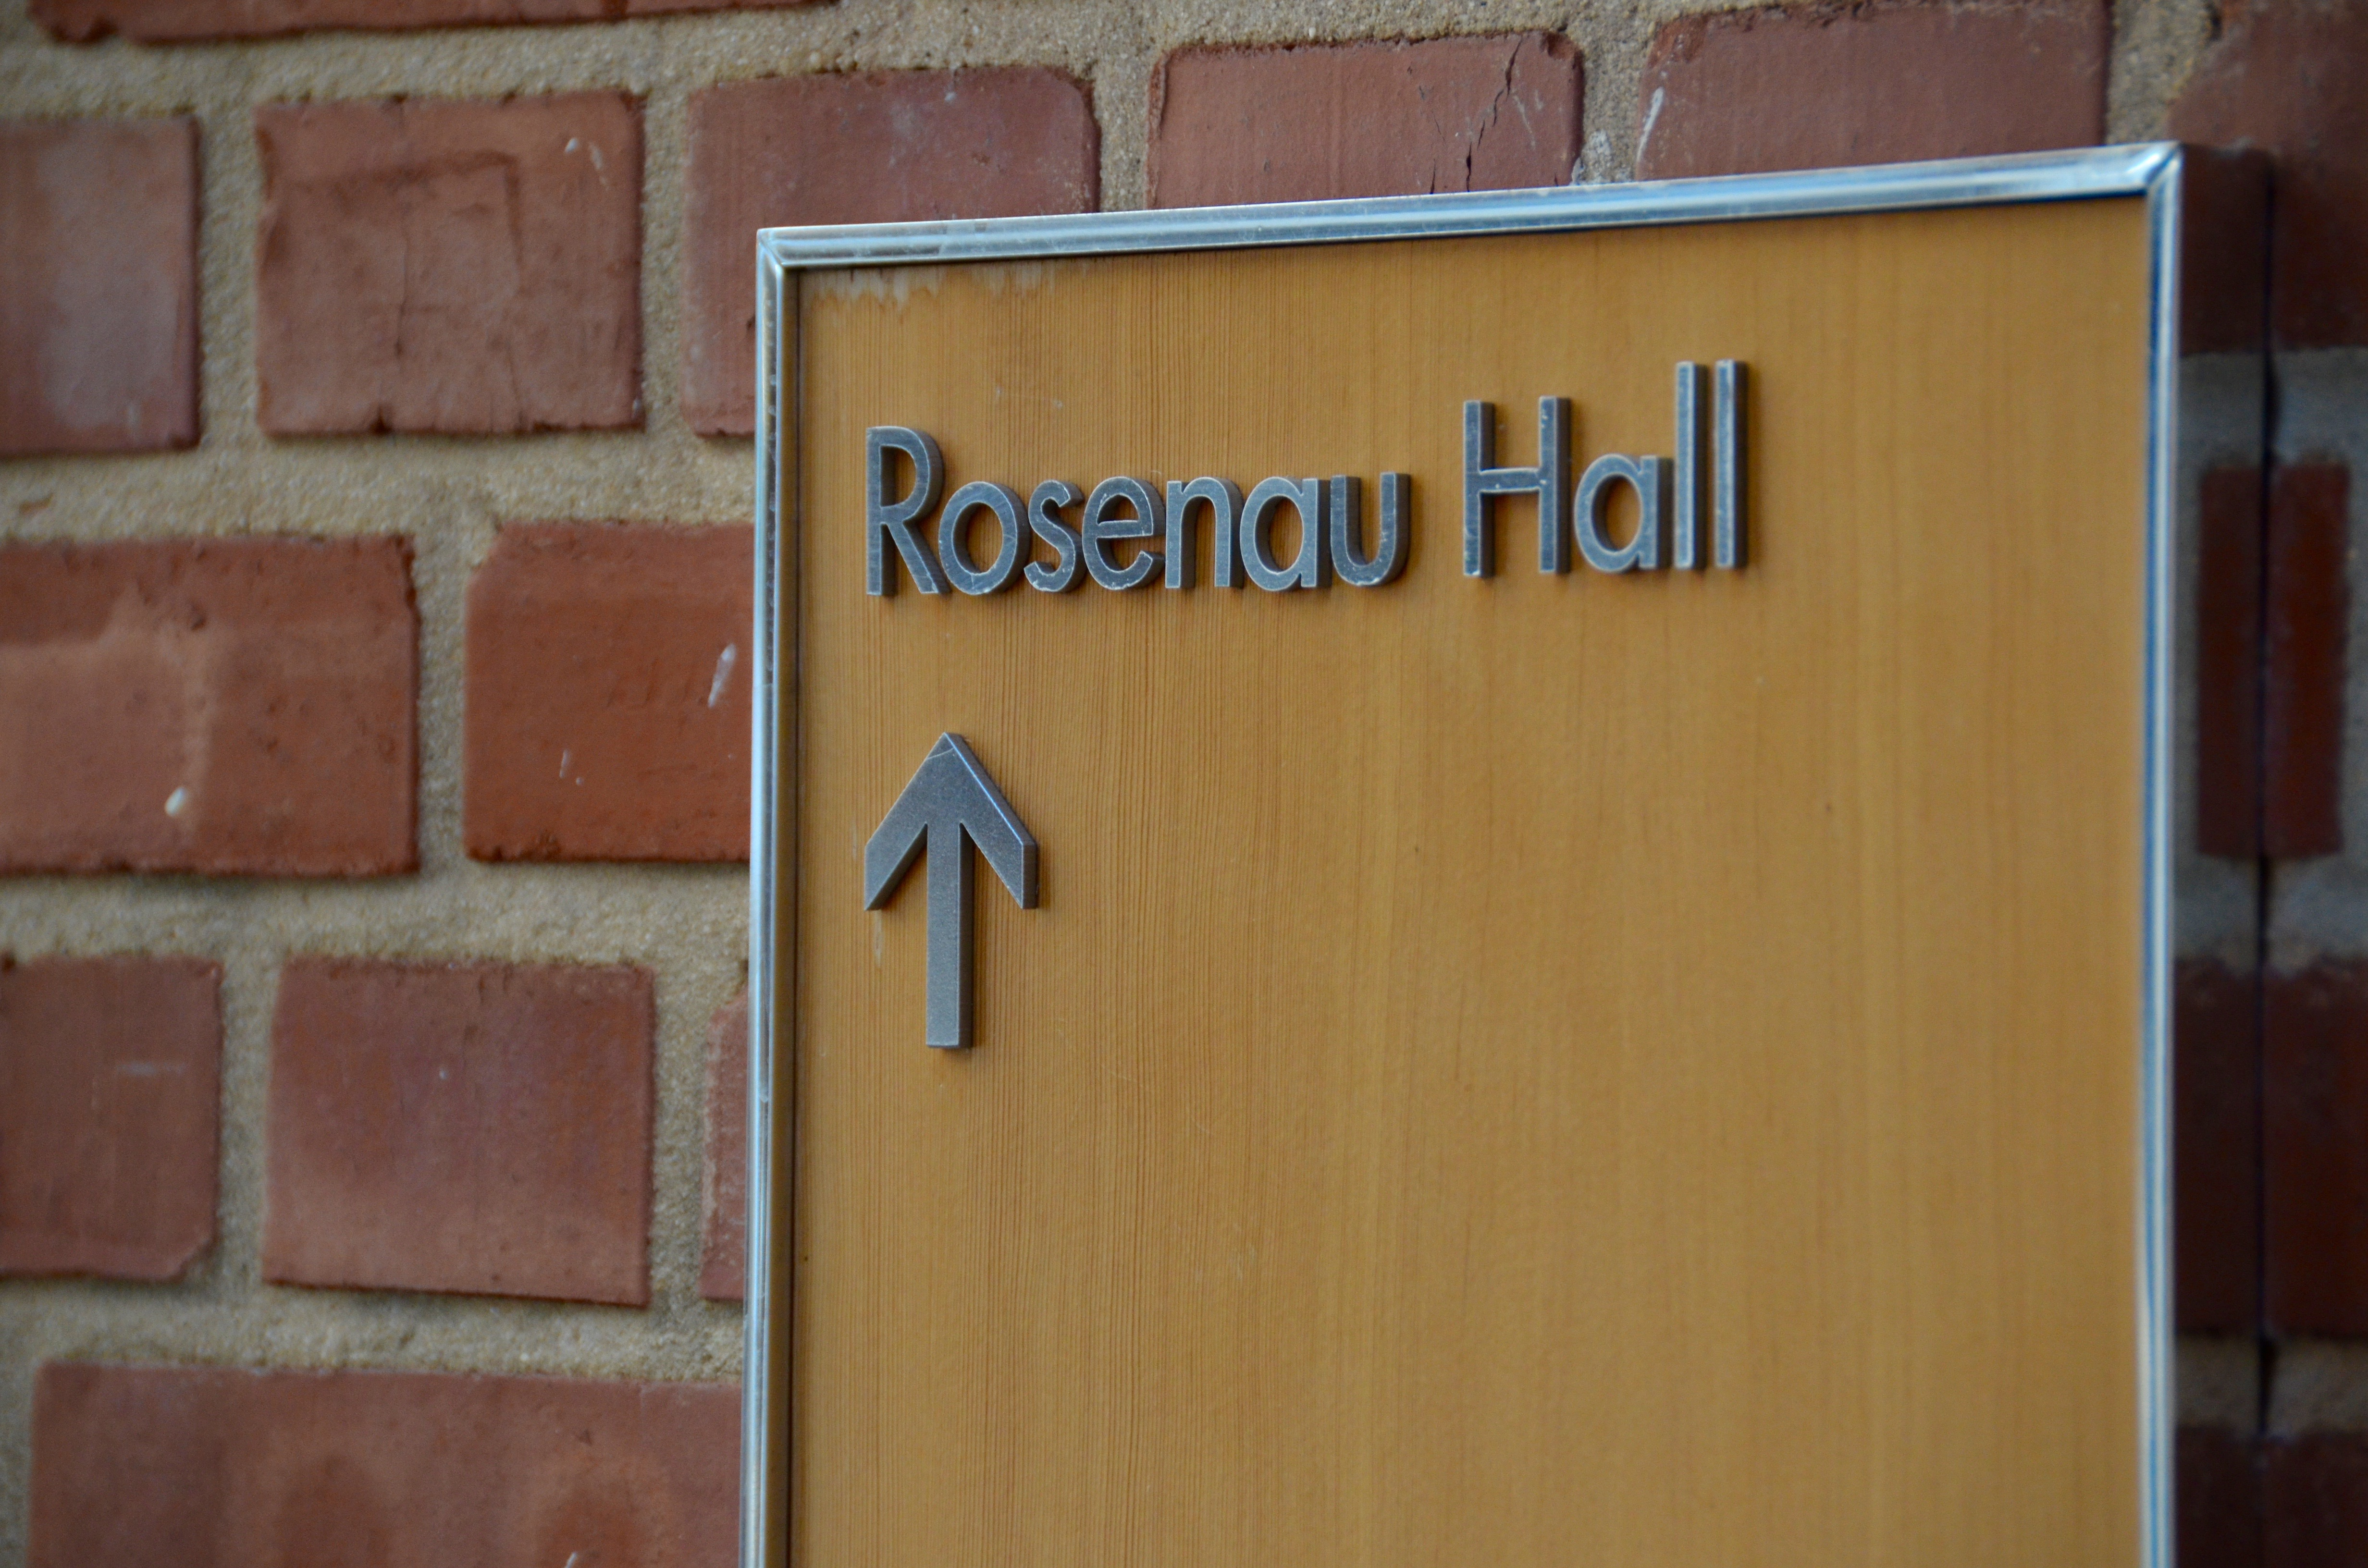 Rosenau Hall is one of the main buildings that make up the UNC Gillings campus.